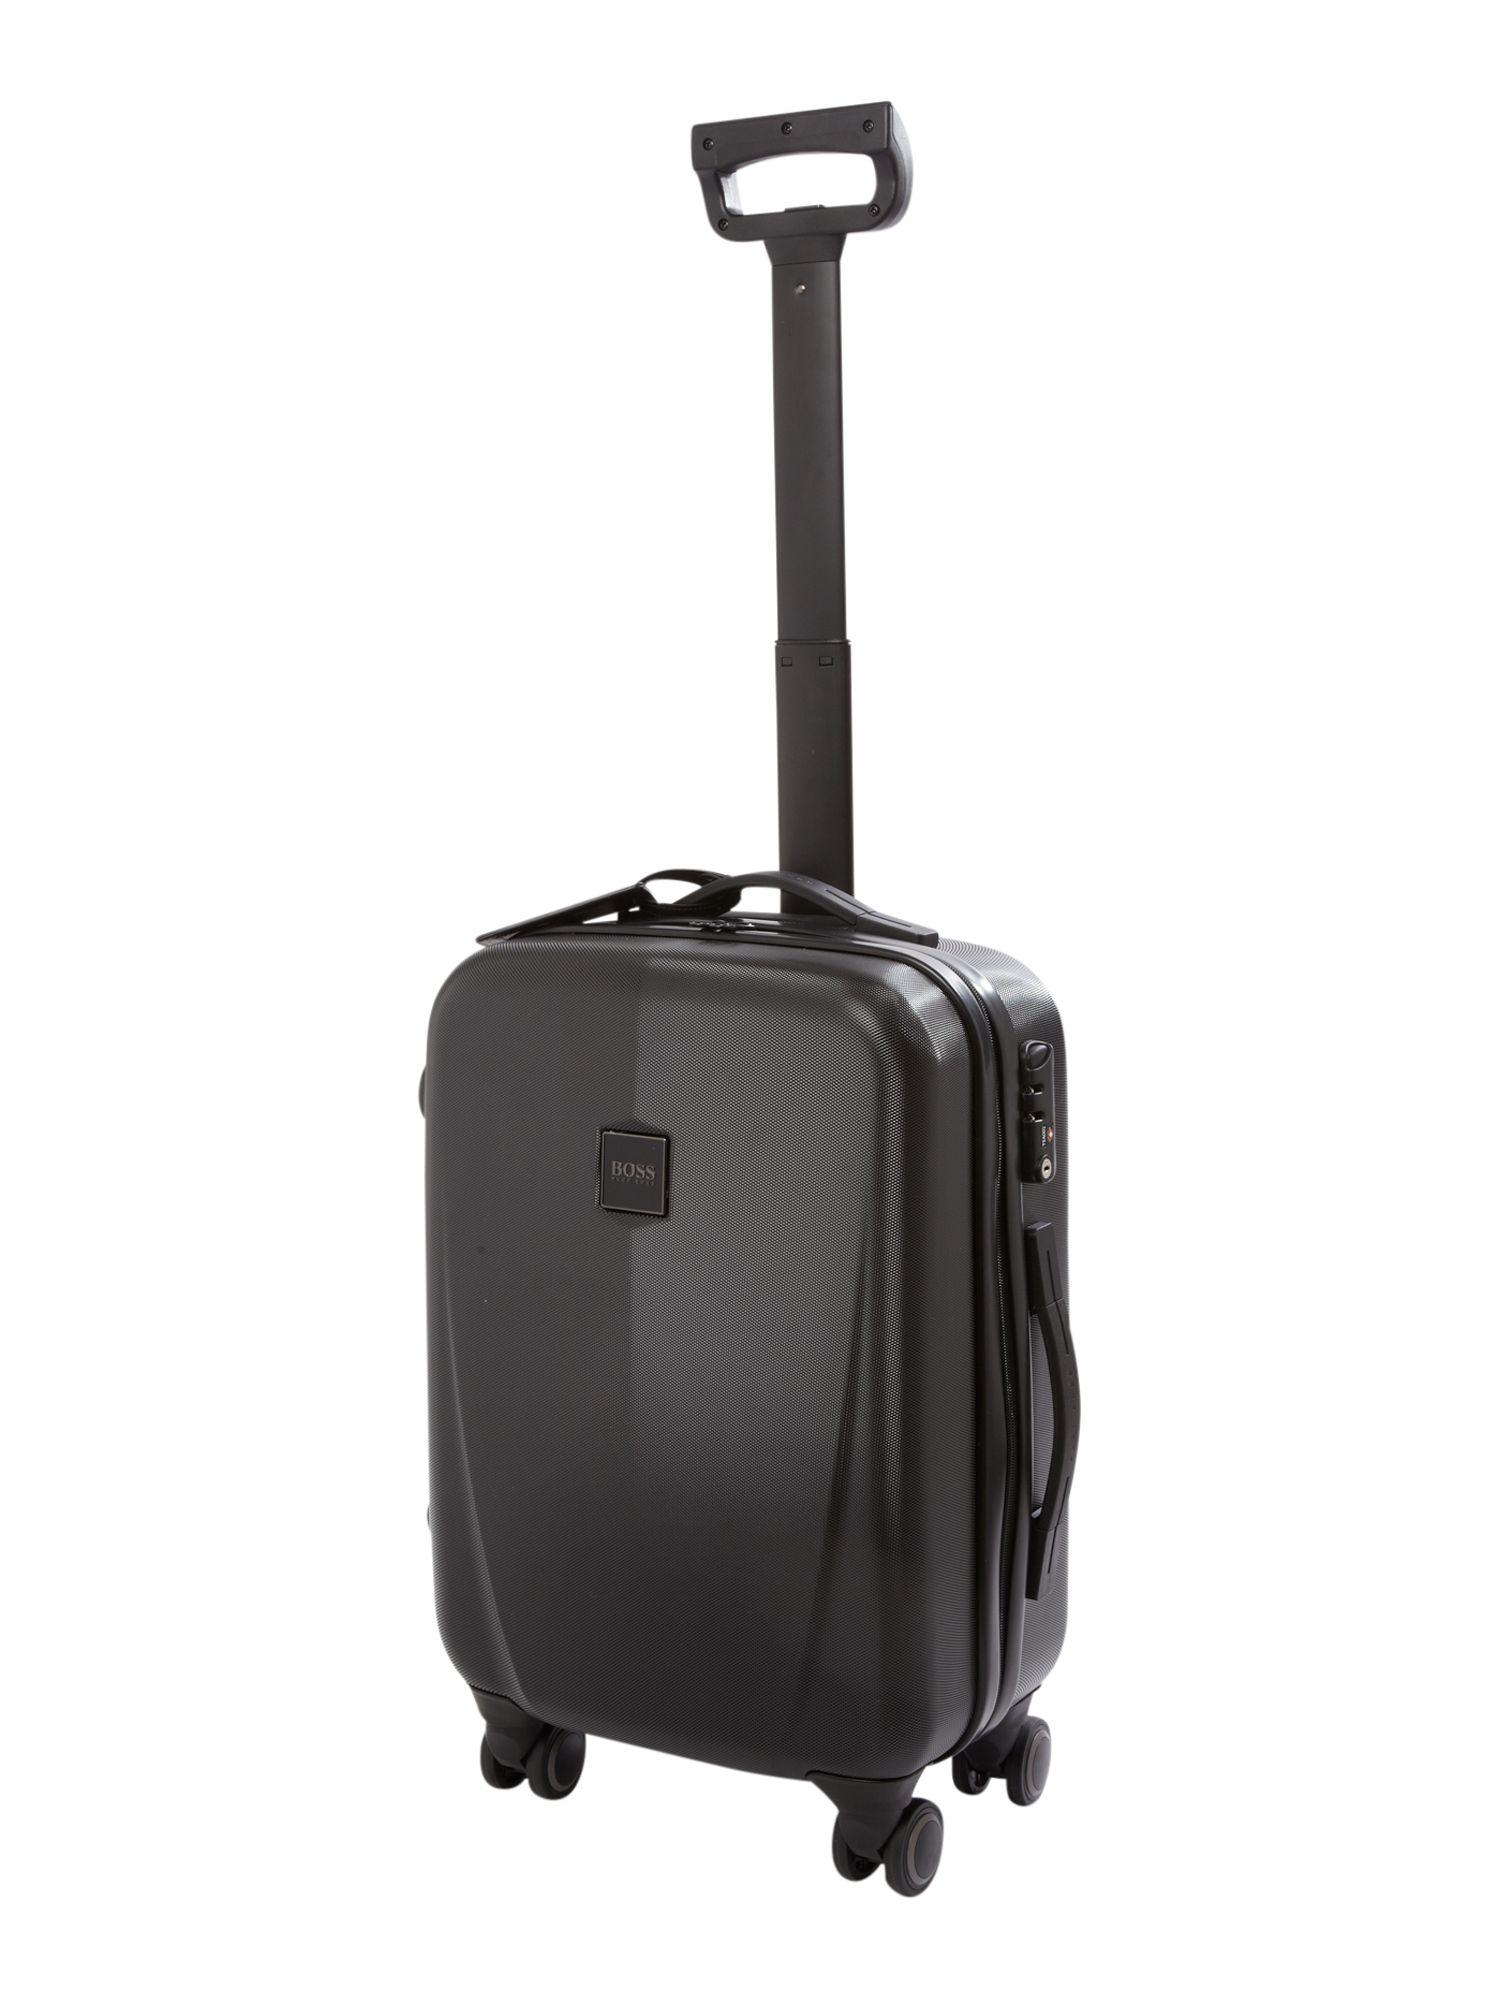 Arturs 4 Wheel Trolley Suitcase